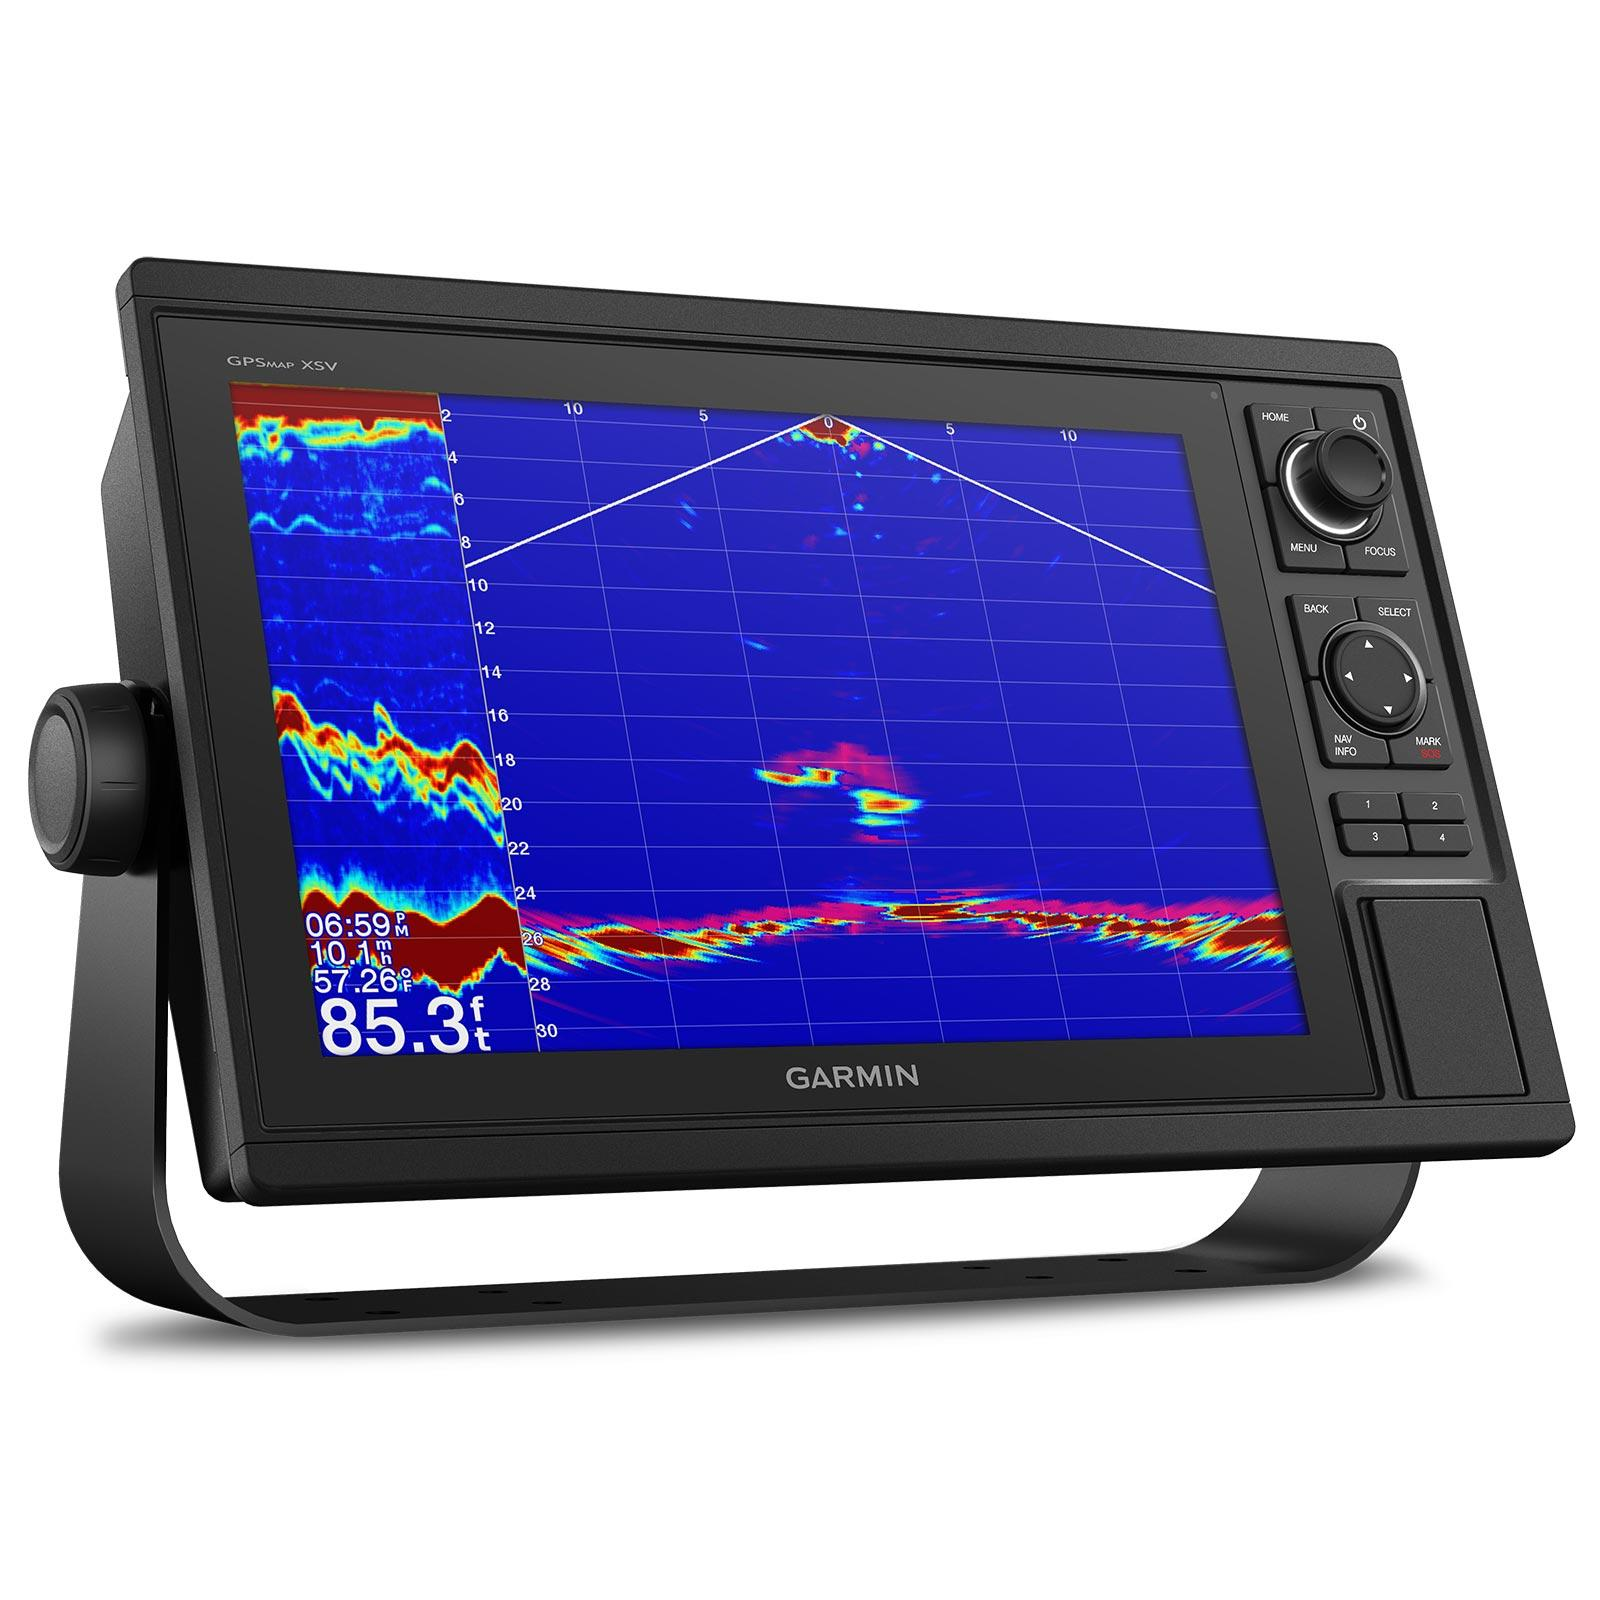 Garmin GPSMAP 1242xsv without Transducer In Use